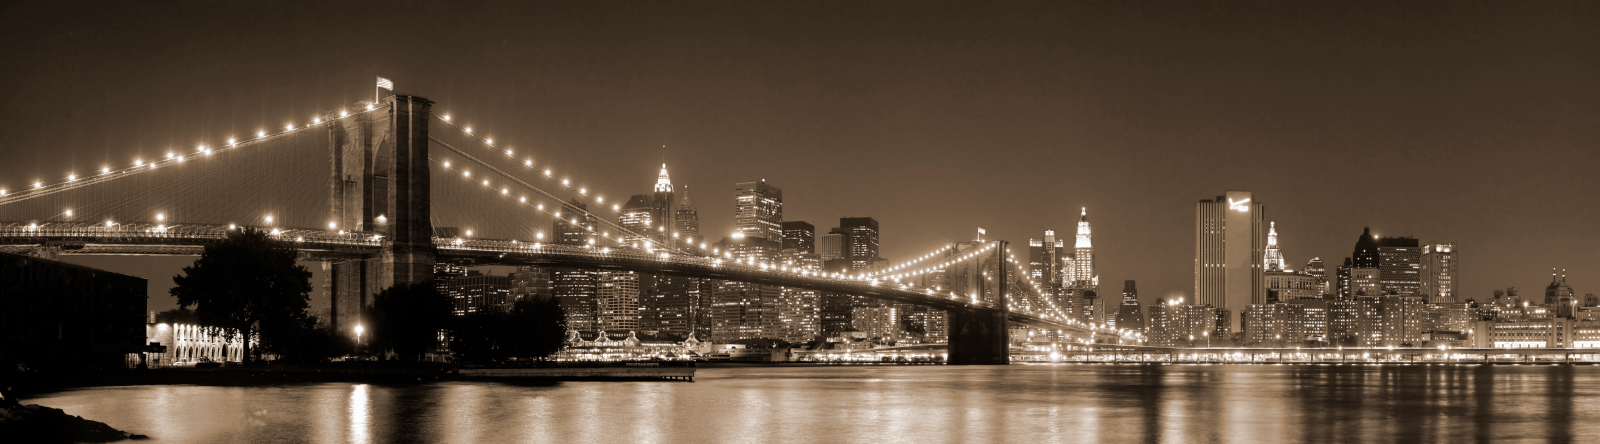 Gravura para Quadros Ponte do Brooklyn New York - Afi6606 -490x140 Cm